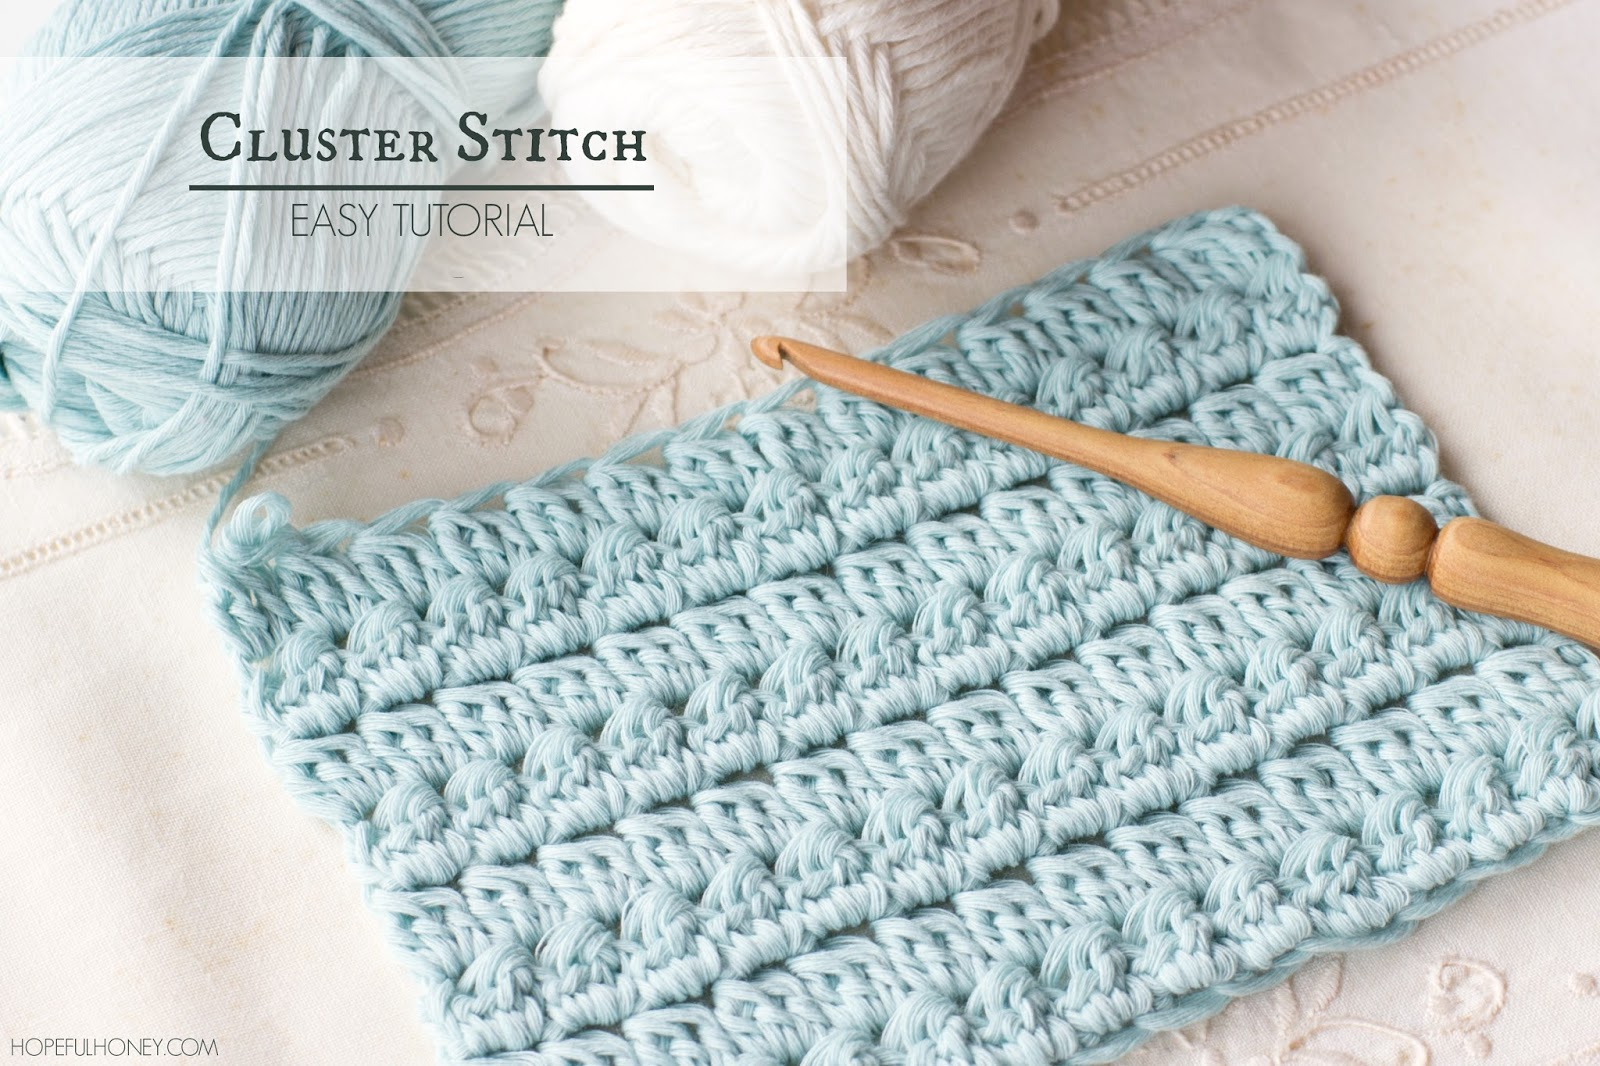 Crocheting Tutorials : ... , Crochet, Create: How To: Crochet The Cluster Stitch - Easy Tutorial